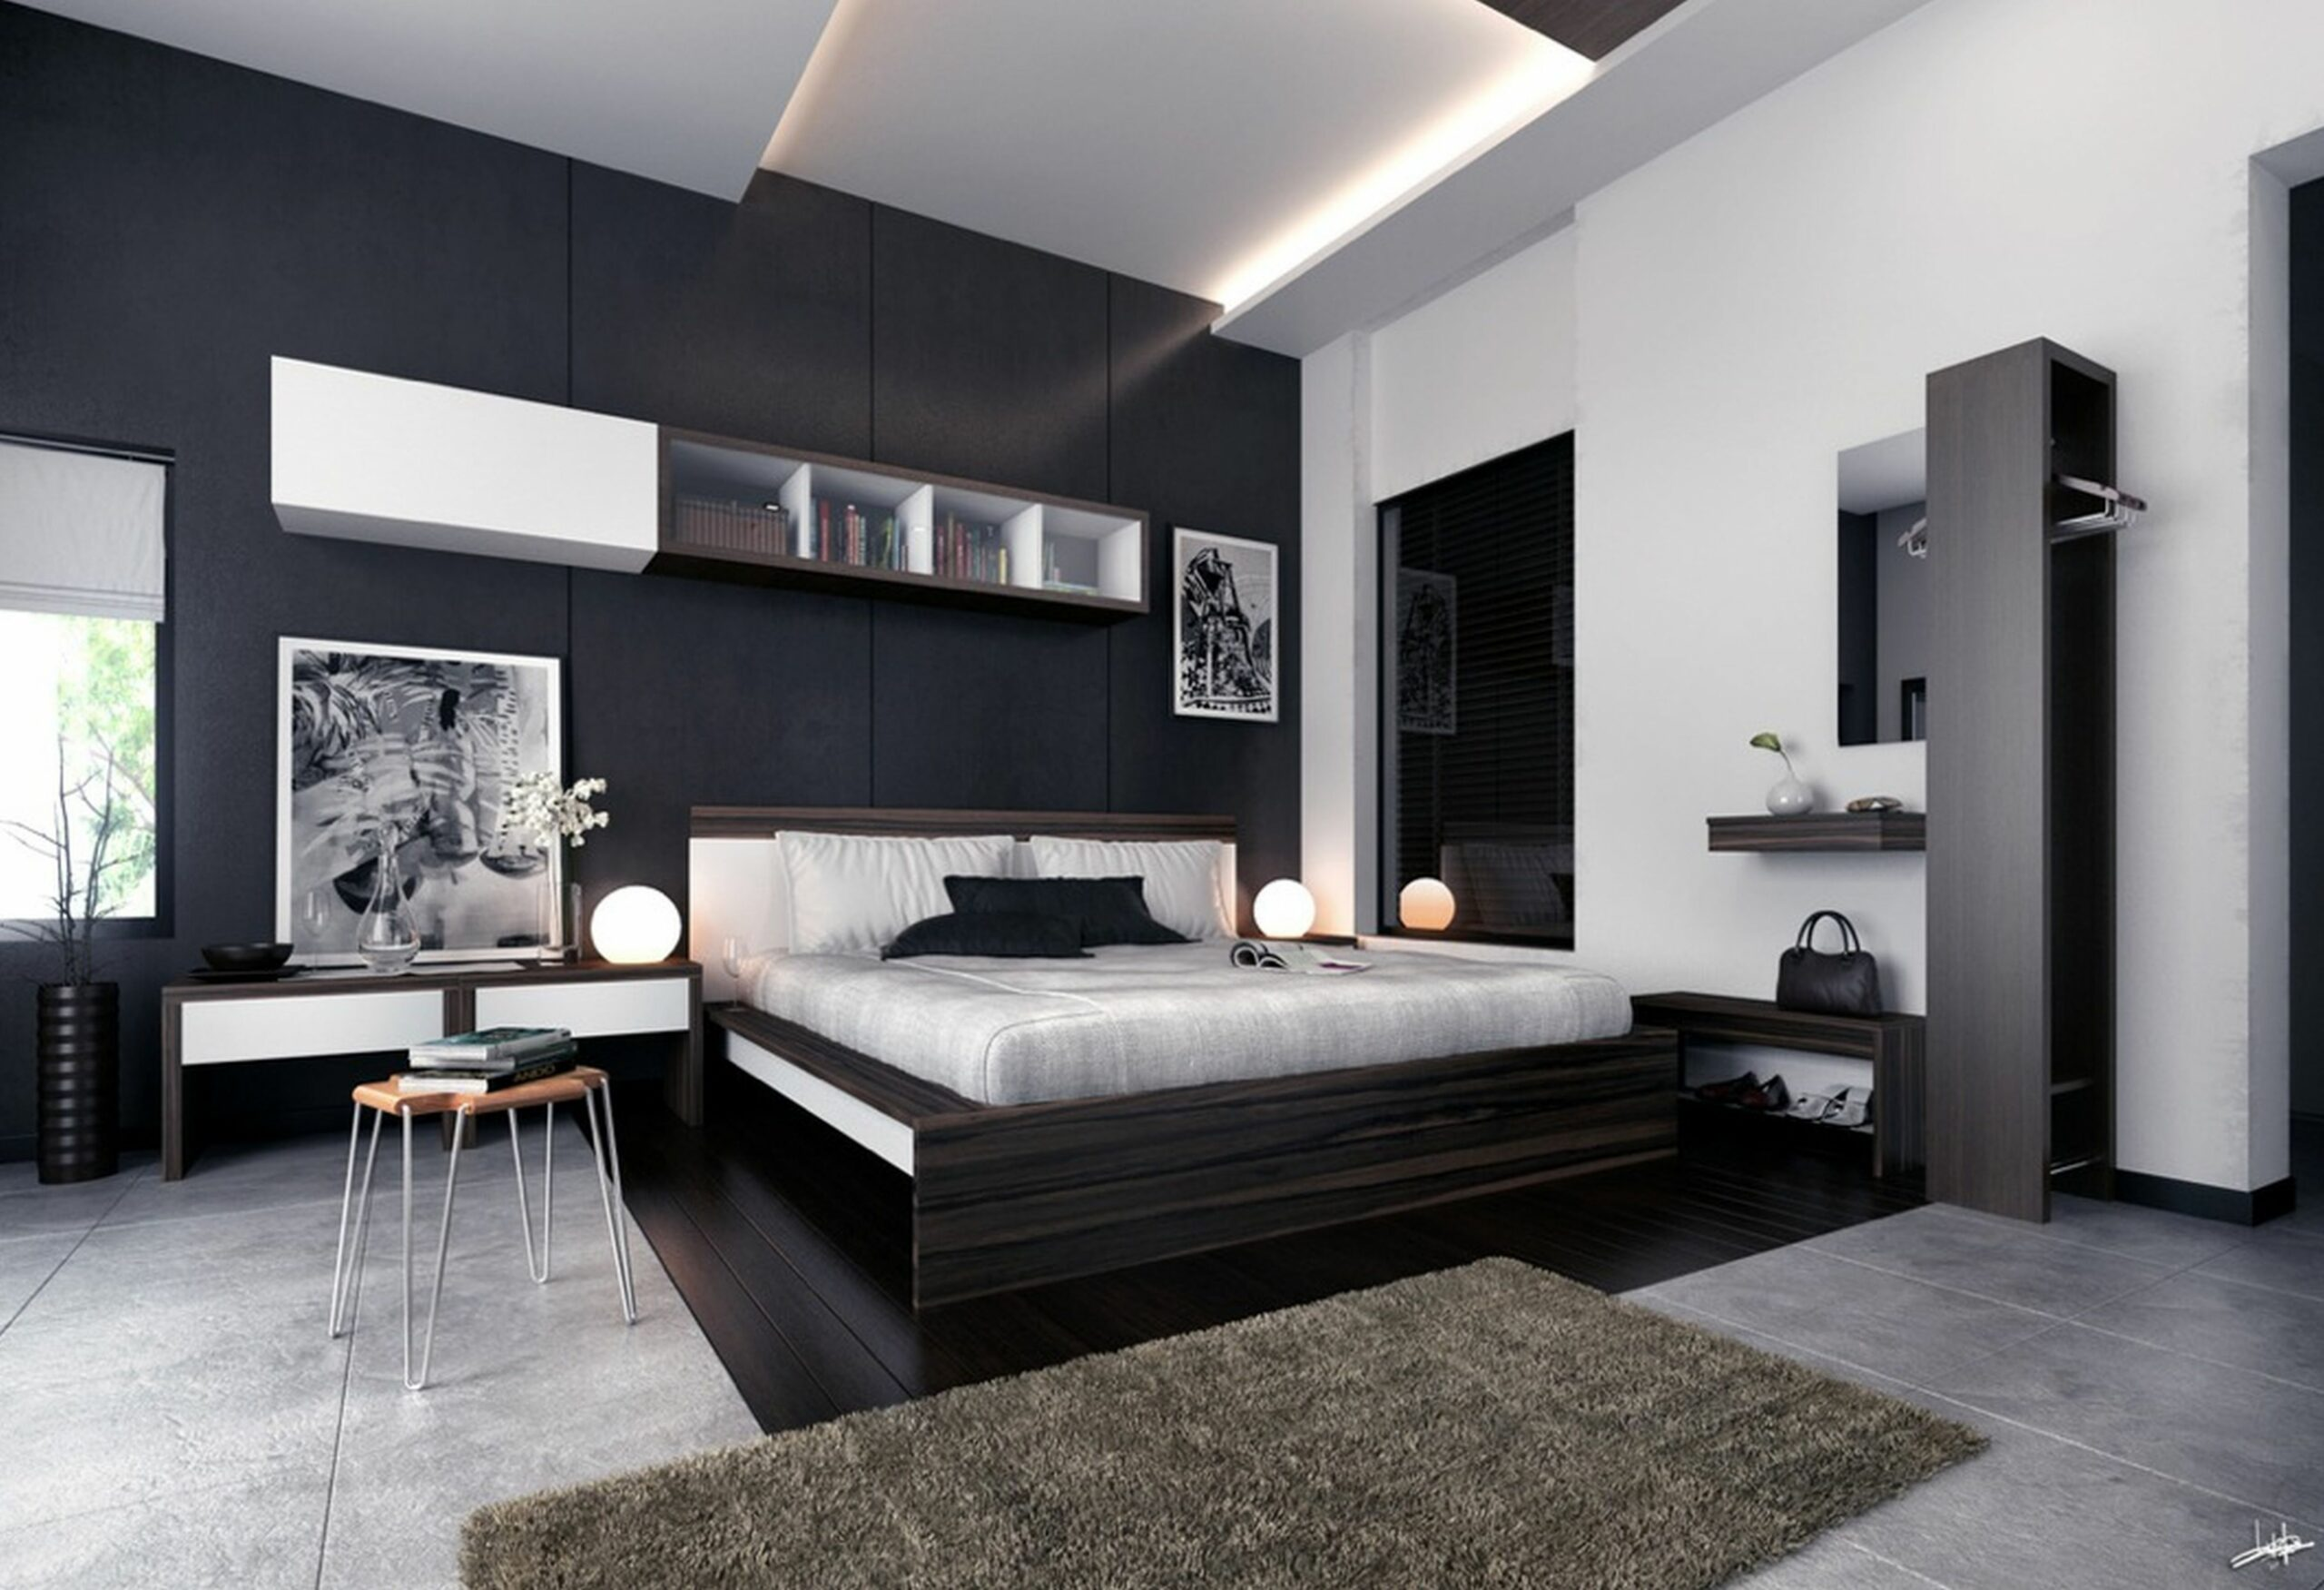 Modern black and white bedroom ideas - bedroom ideas black and white